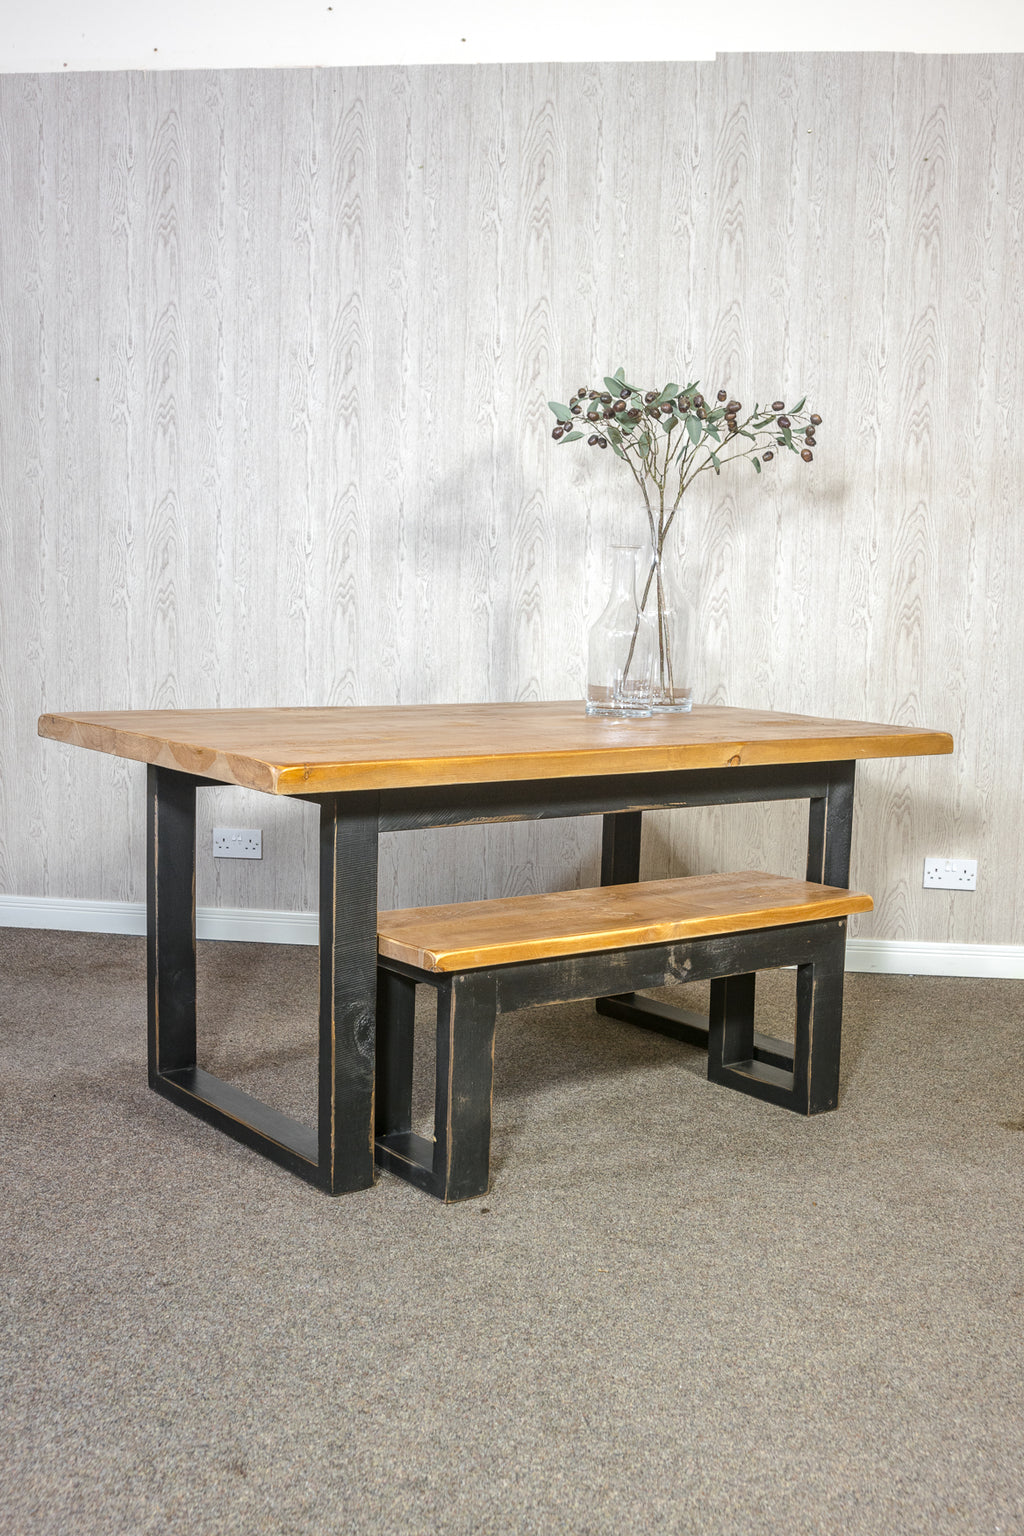 Boss Industrial Box Legs Dining Table